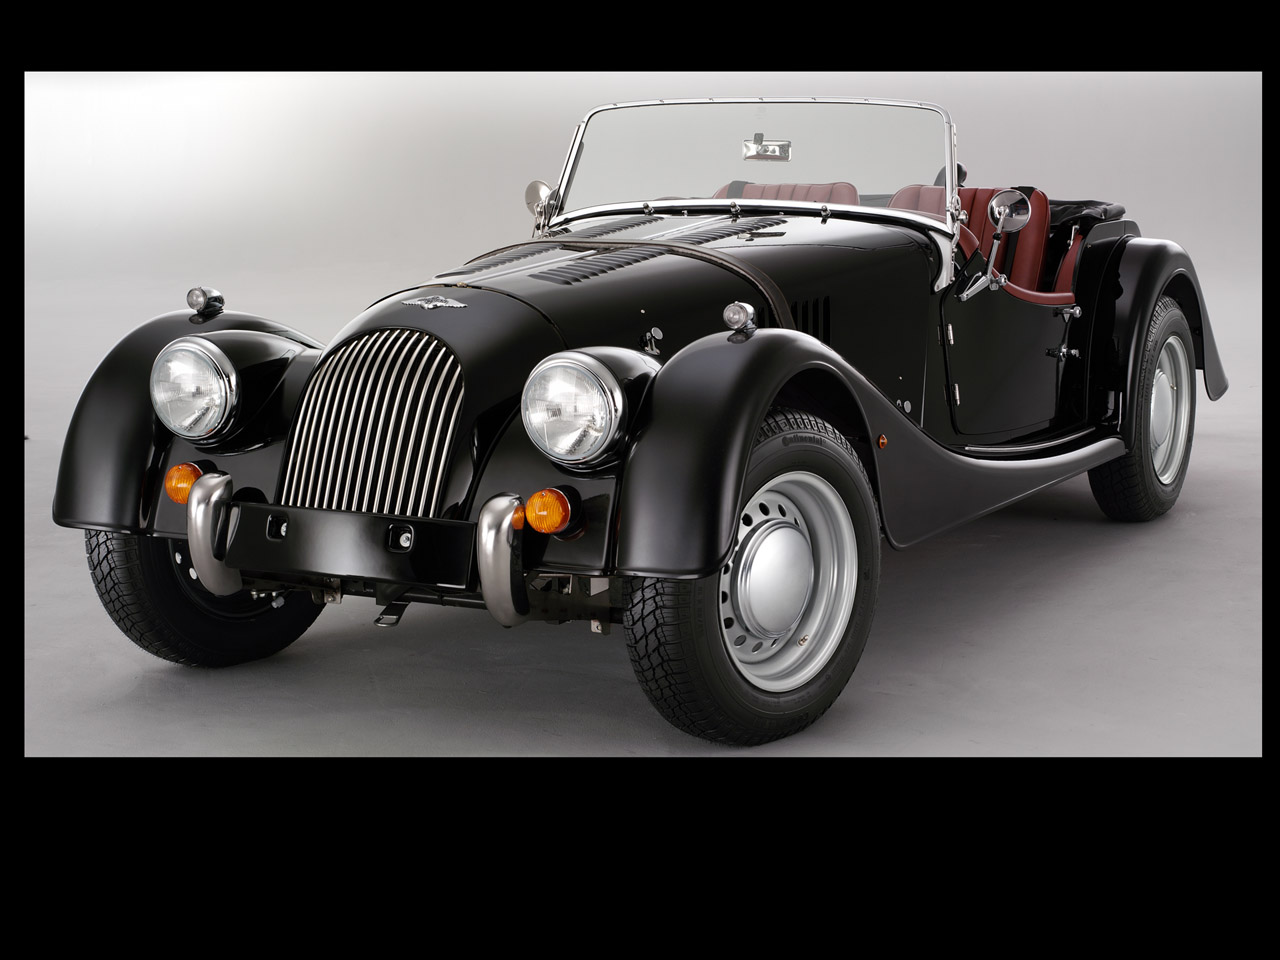 2006 Morgan 4/4 70th Anniversary